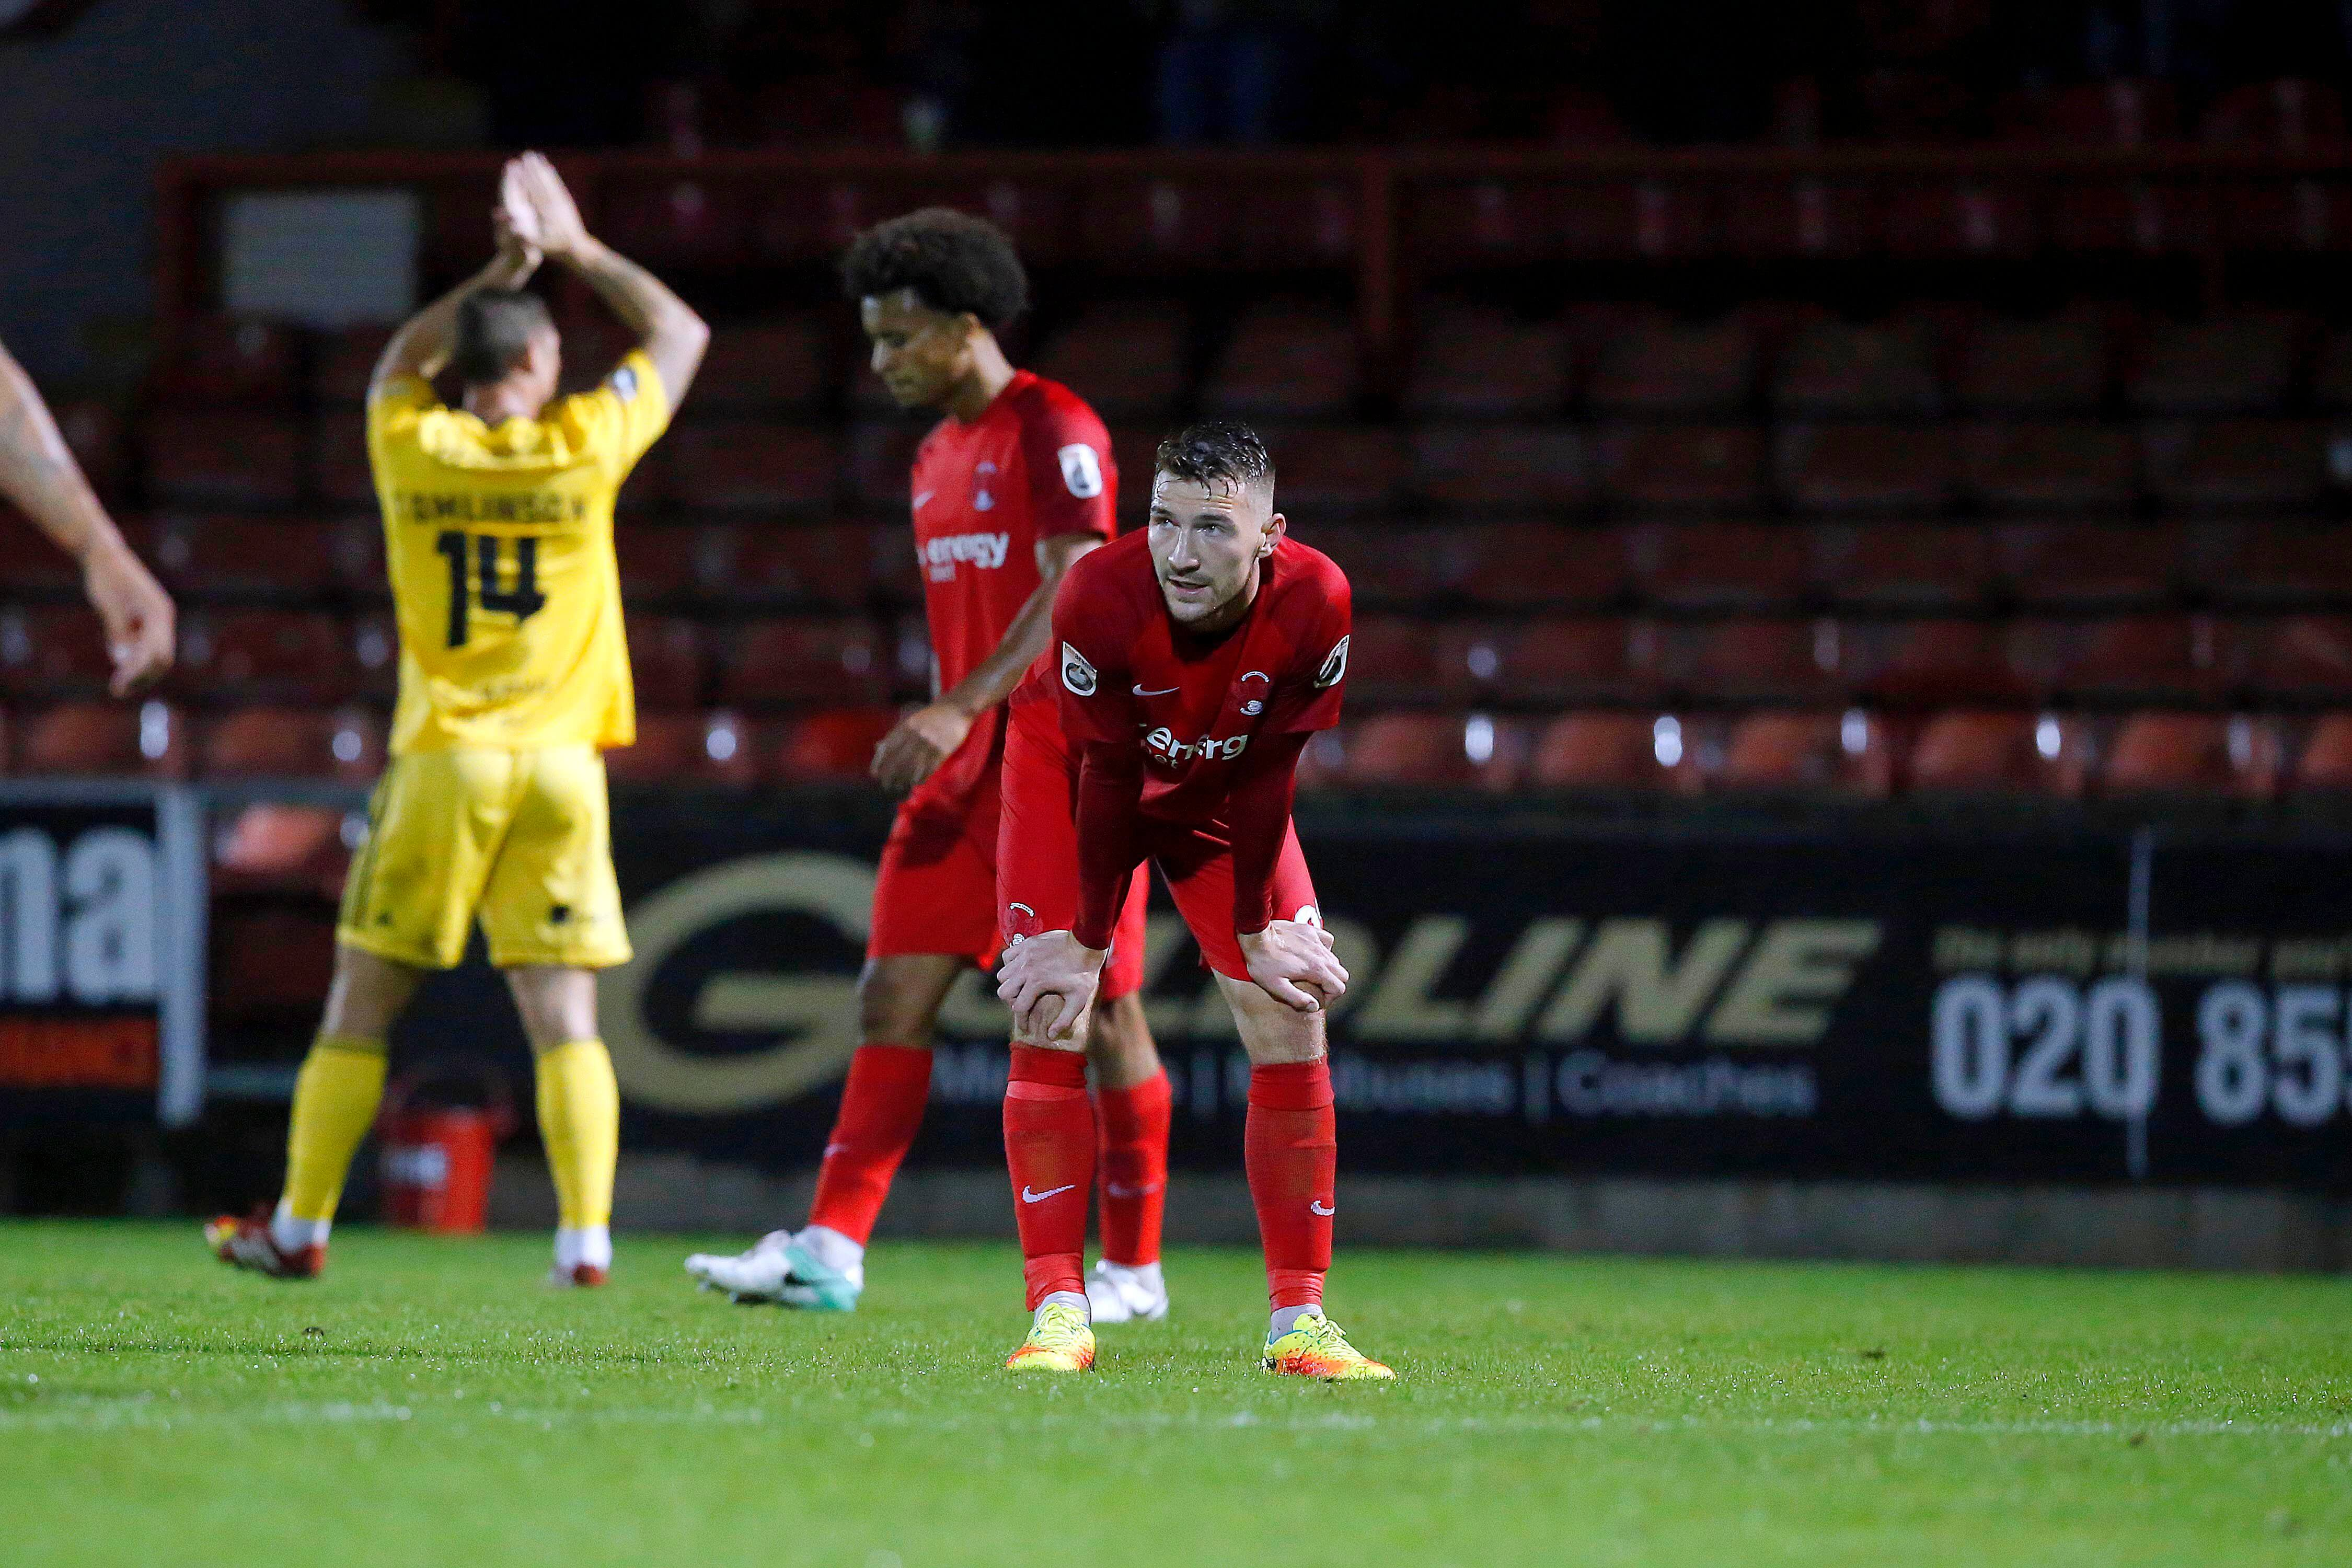 Halifax Knock The Stuffing Out Of Orient